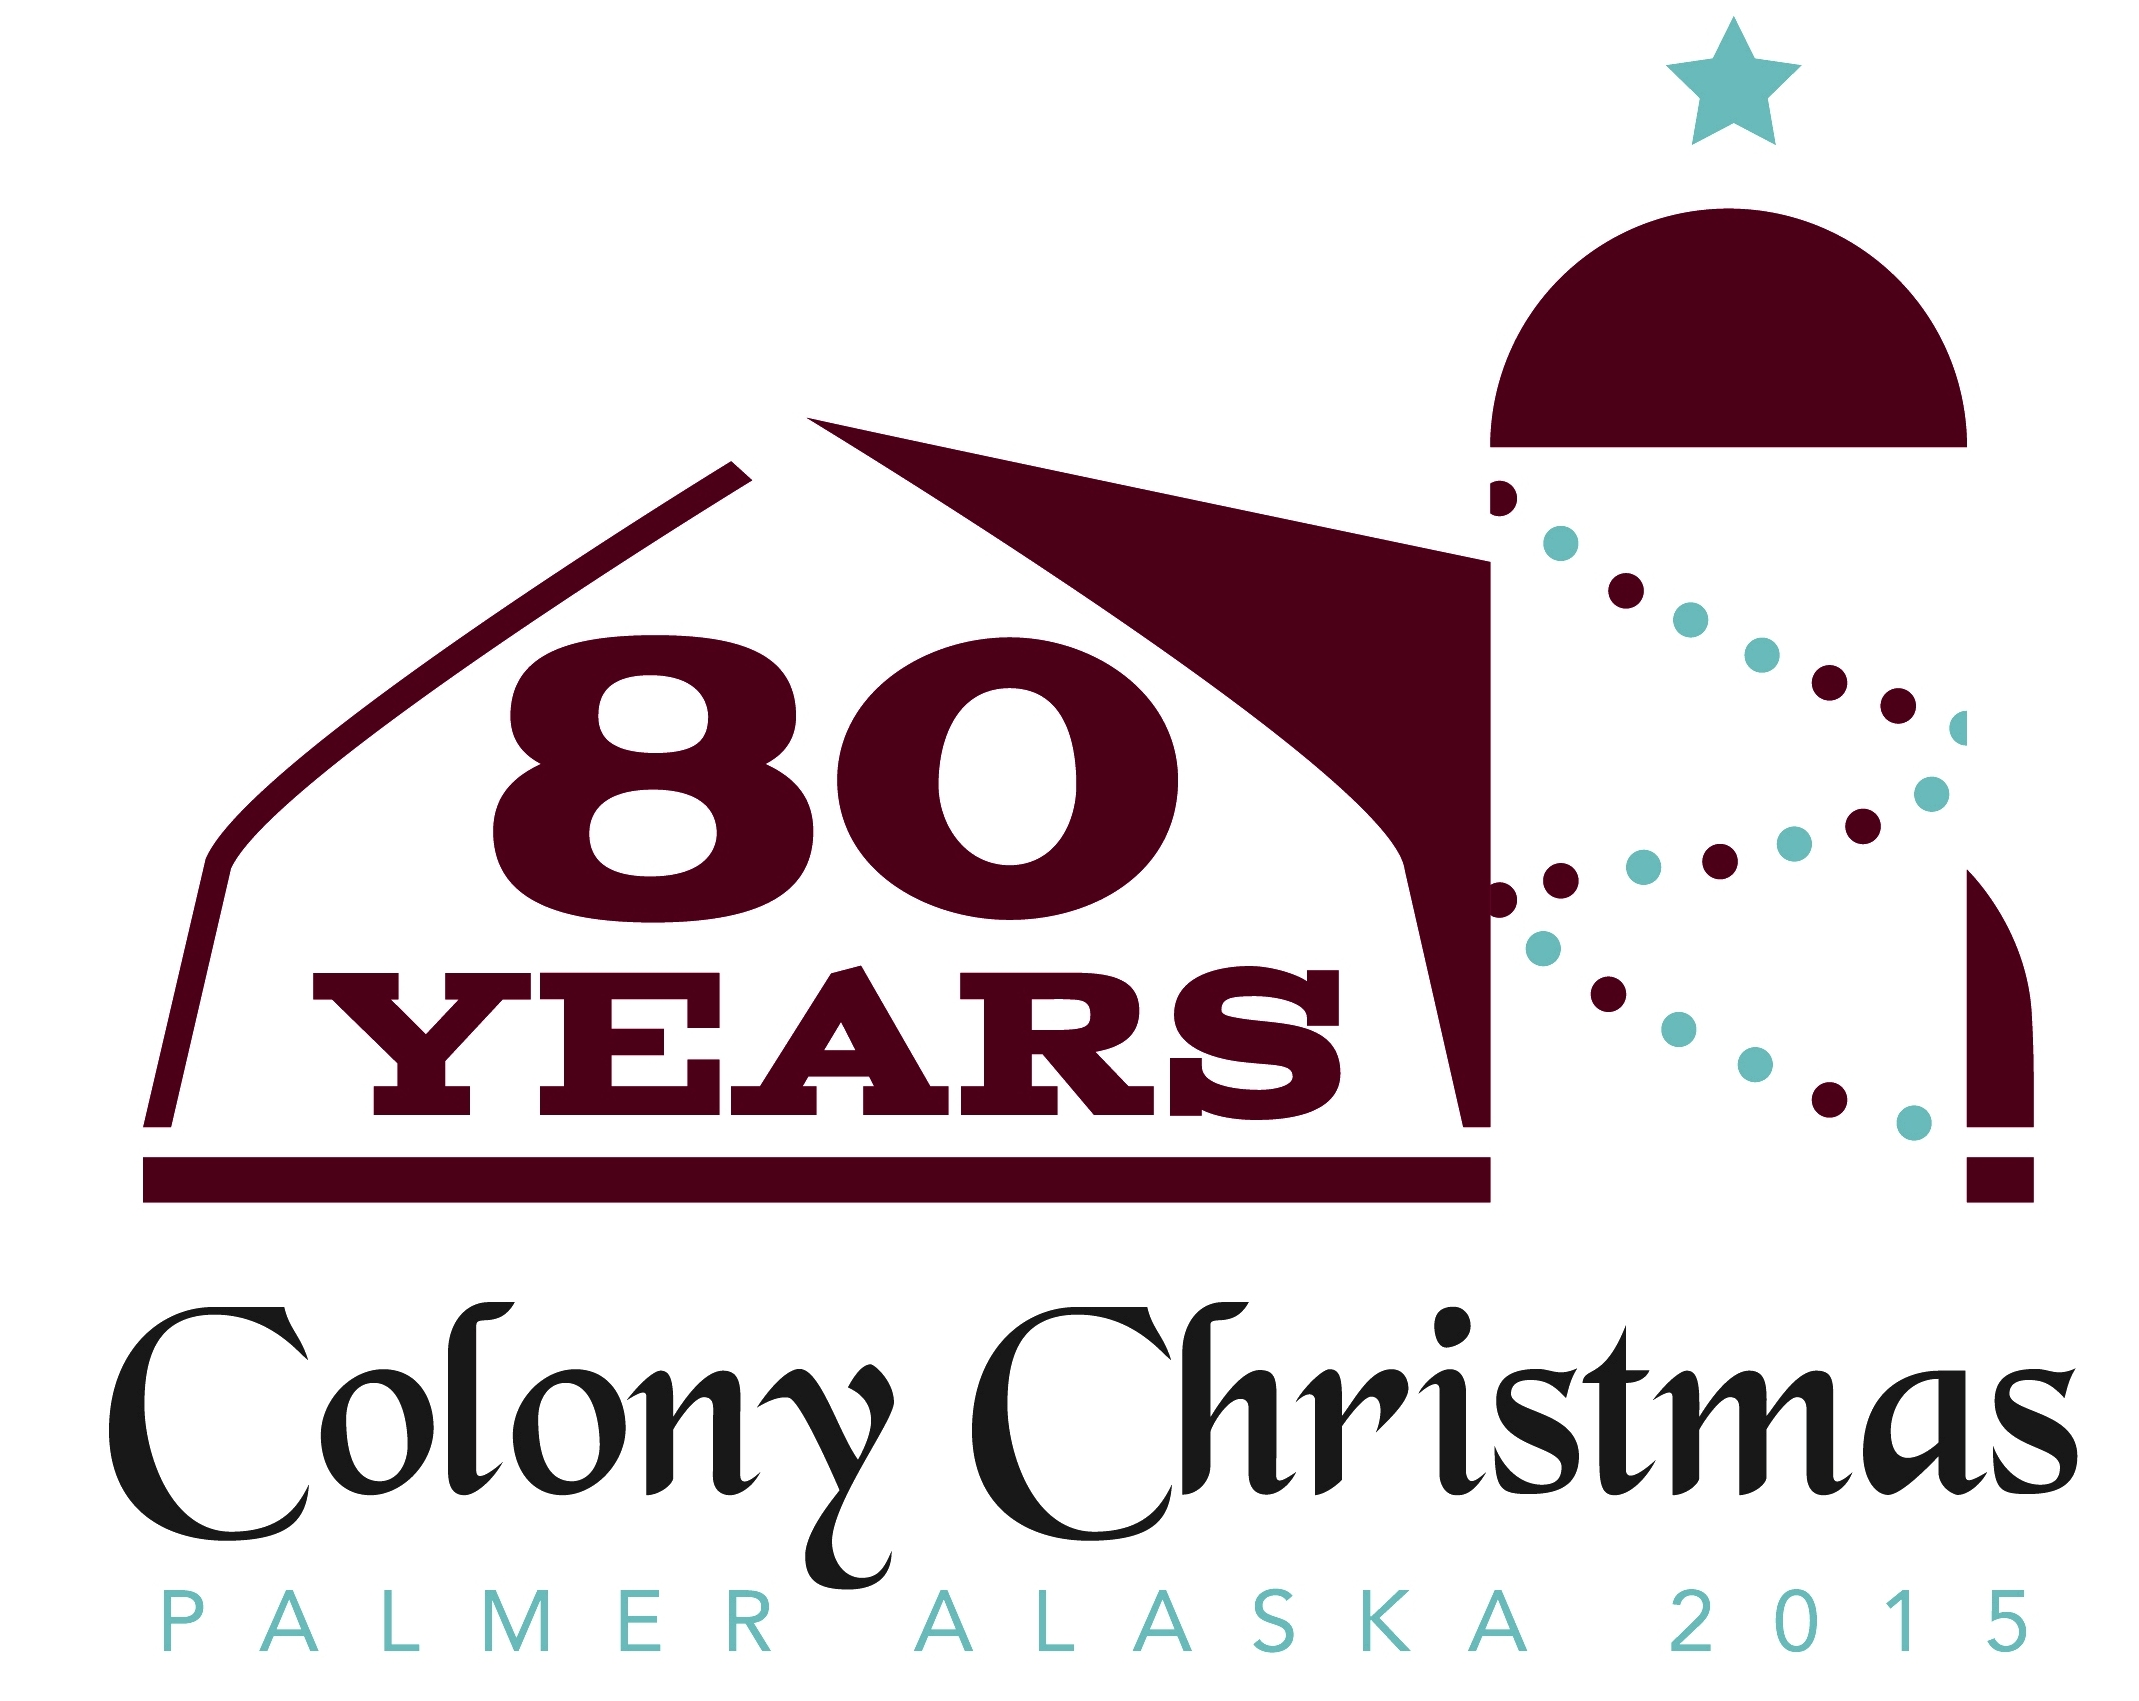 Colony Christmas 2015